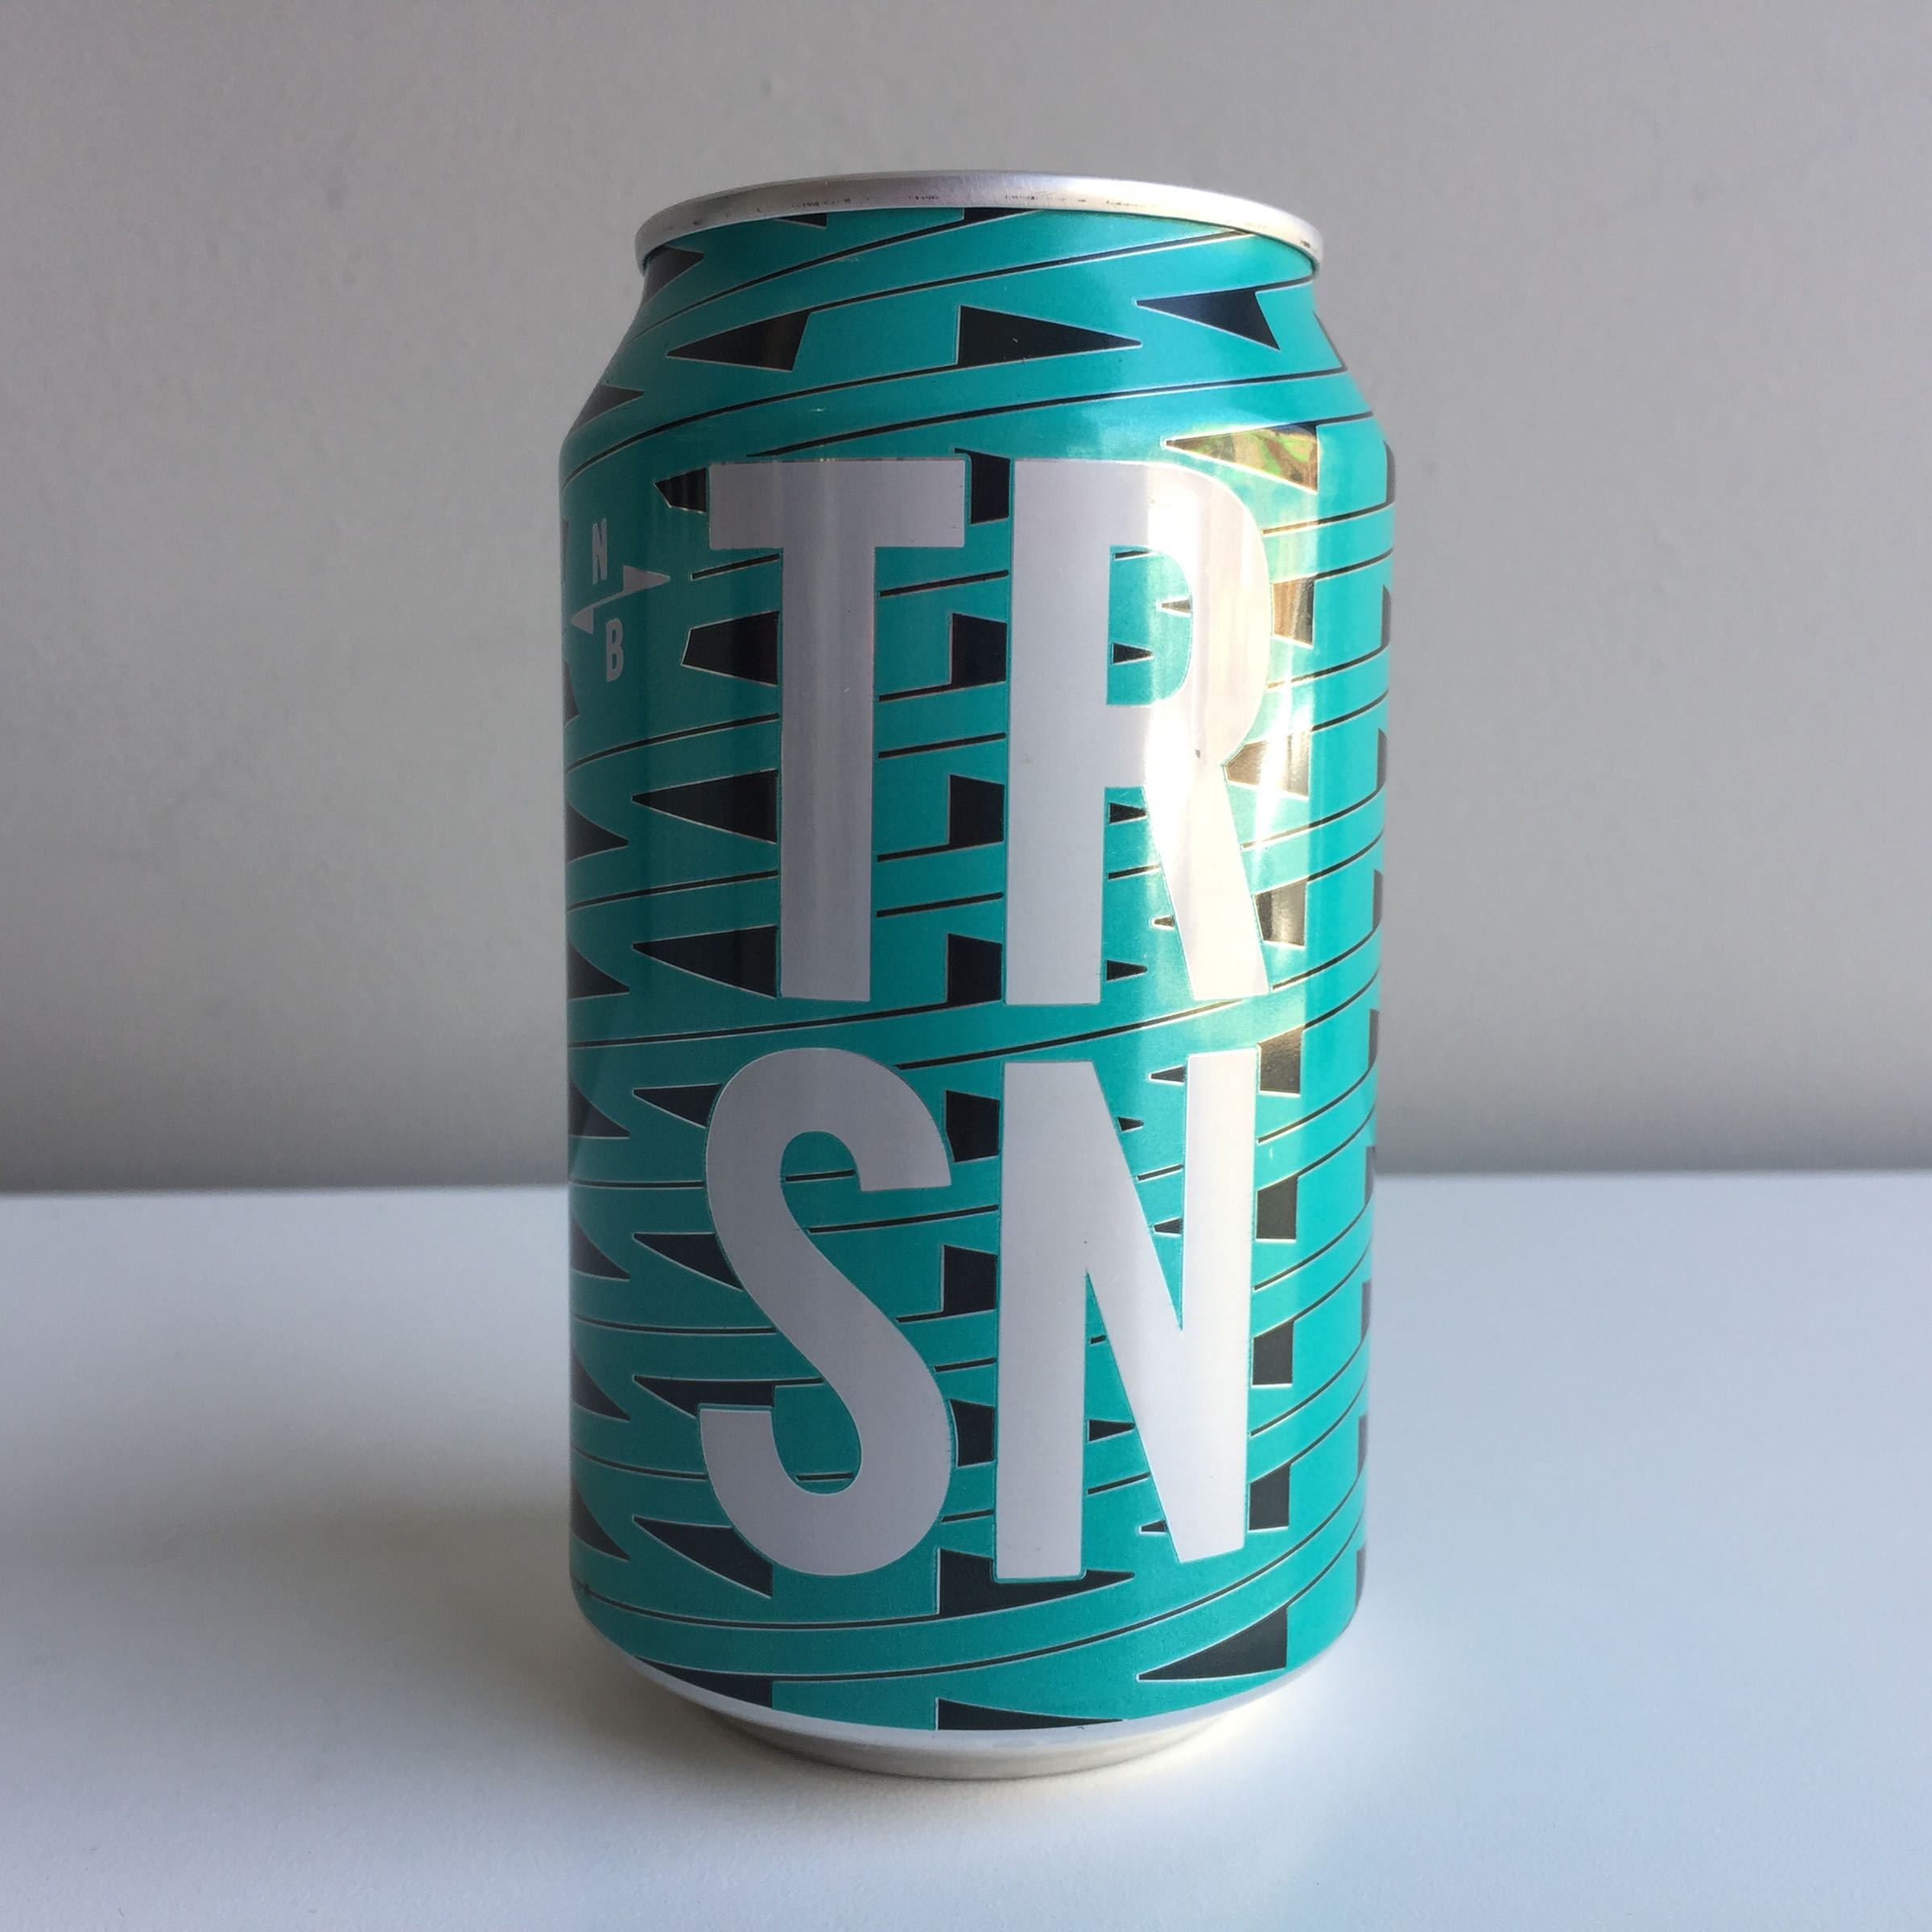 North Brewing Co. 'Transmission' IPA 330ml 6.9% ABV